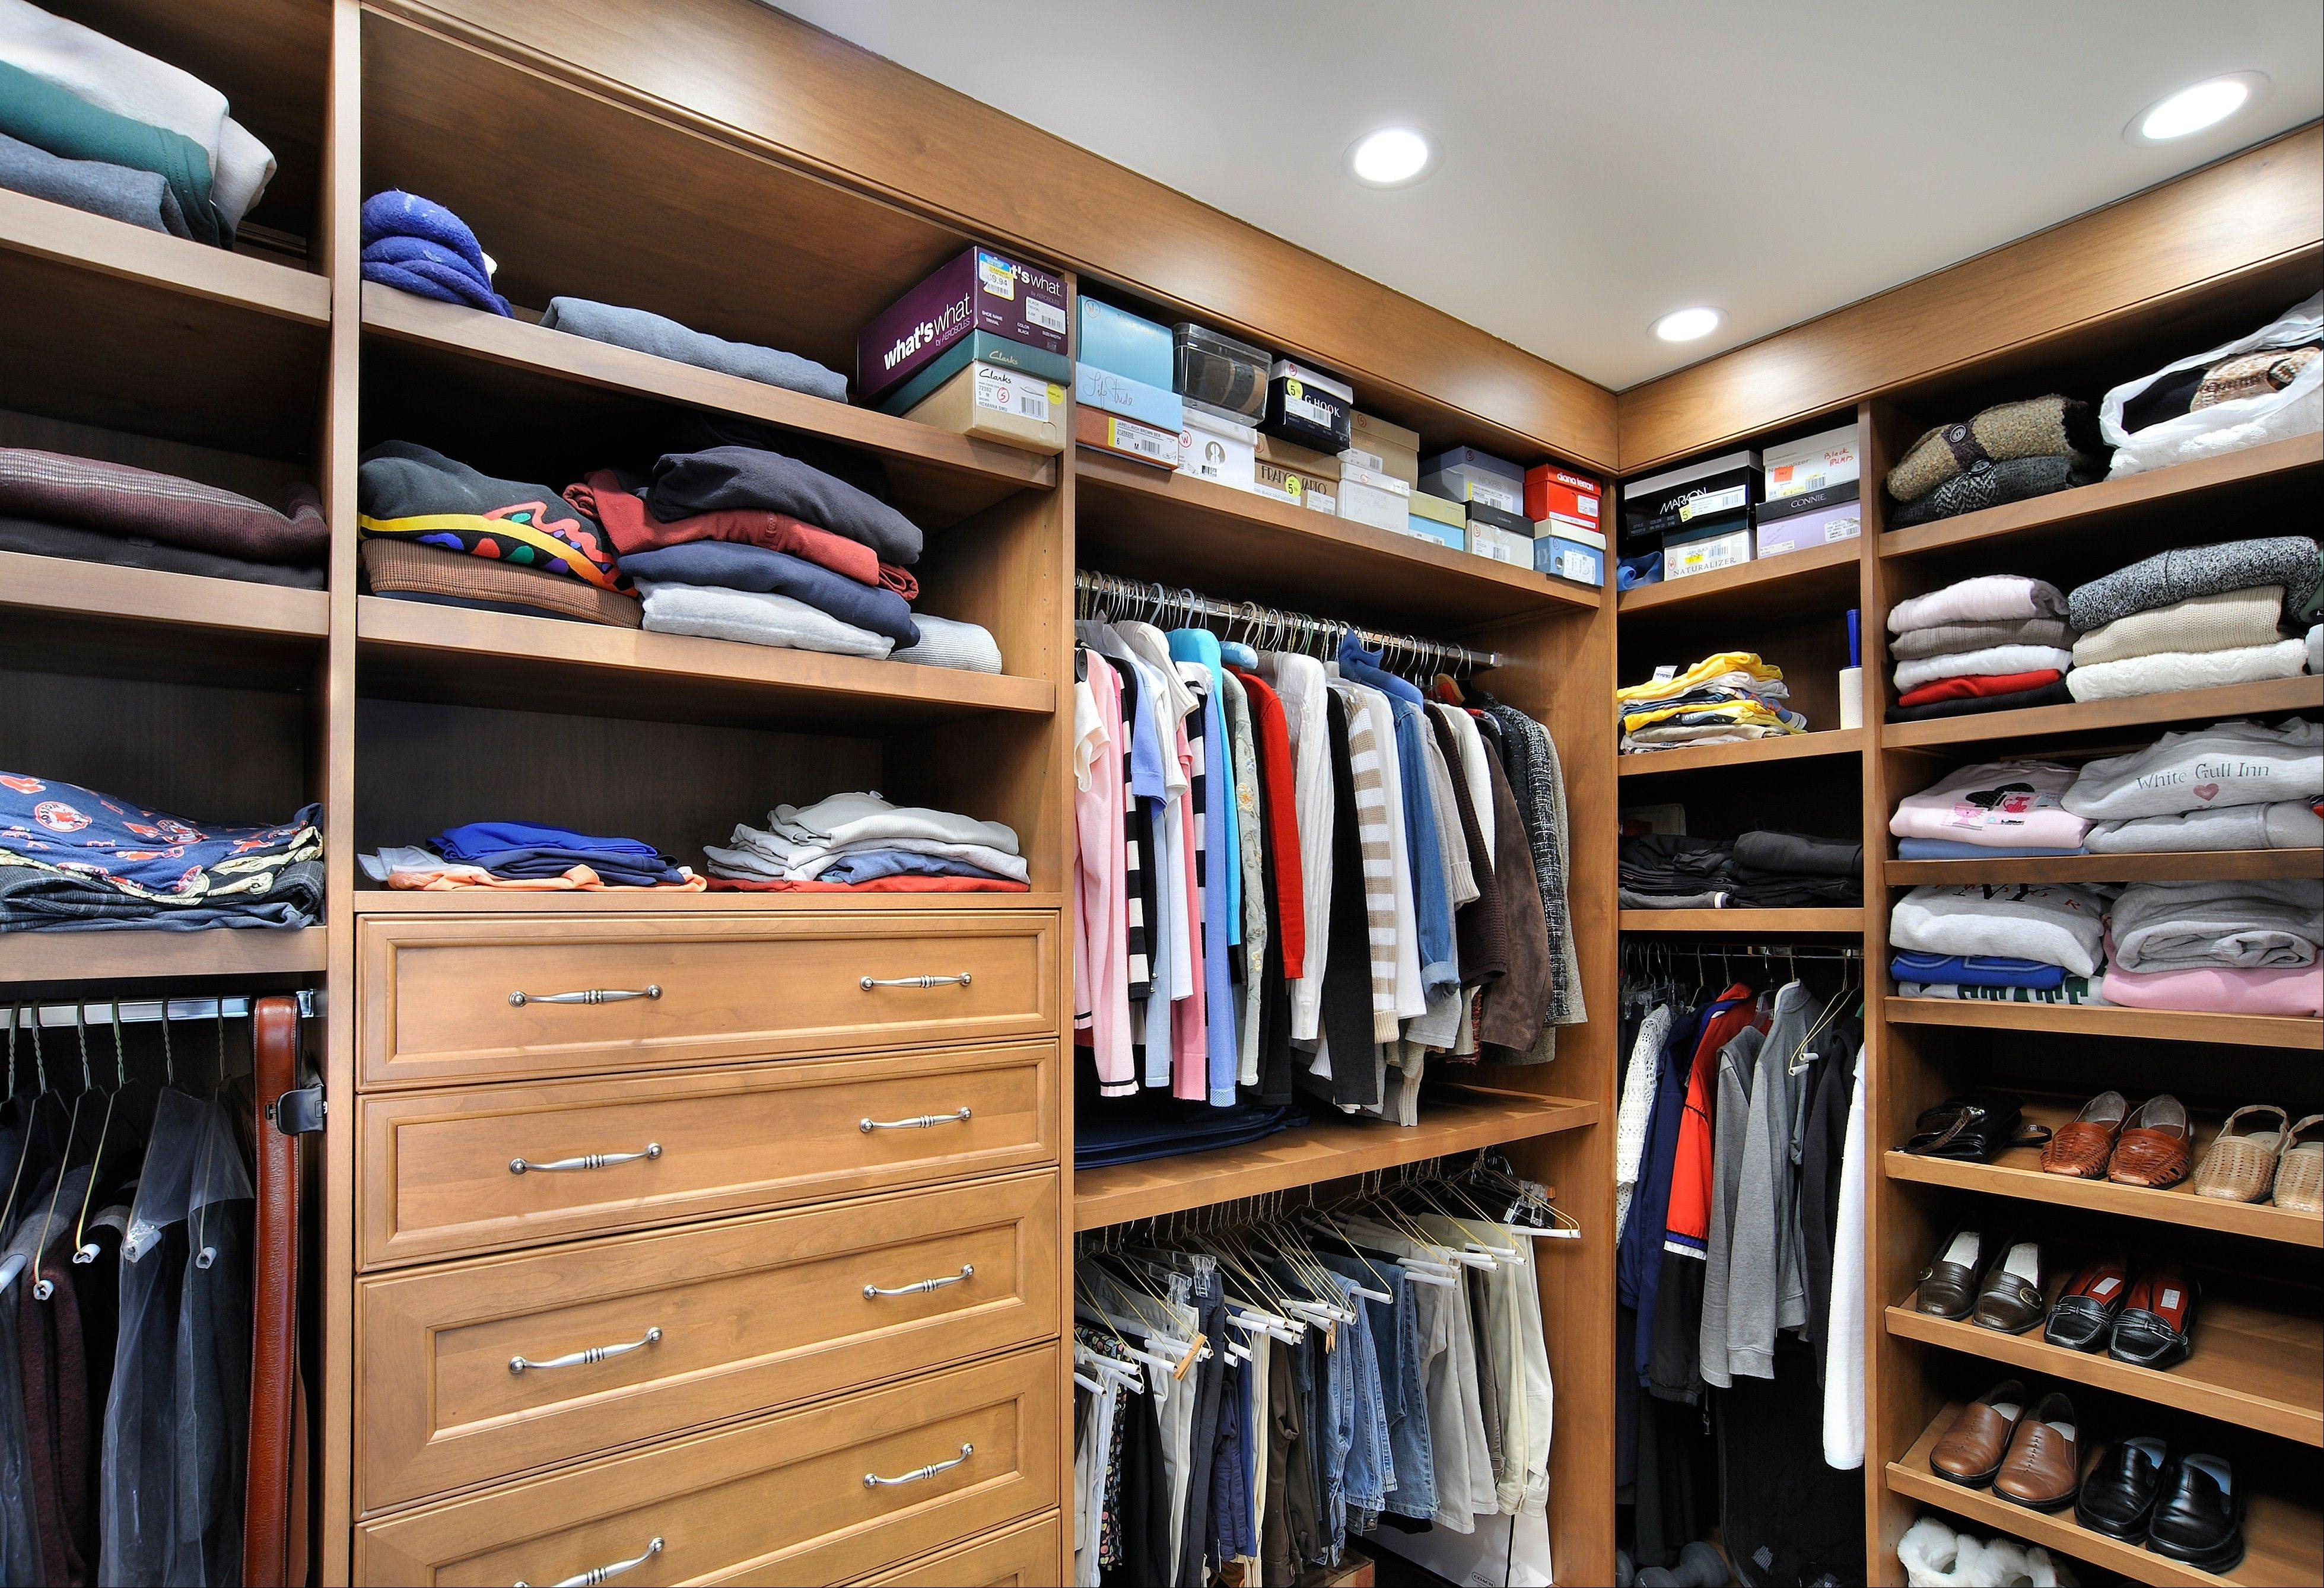 Organize your closet by grouping similar types and colors of clothing.